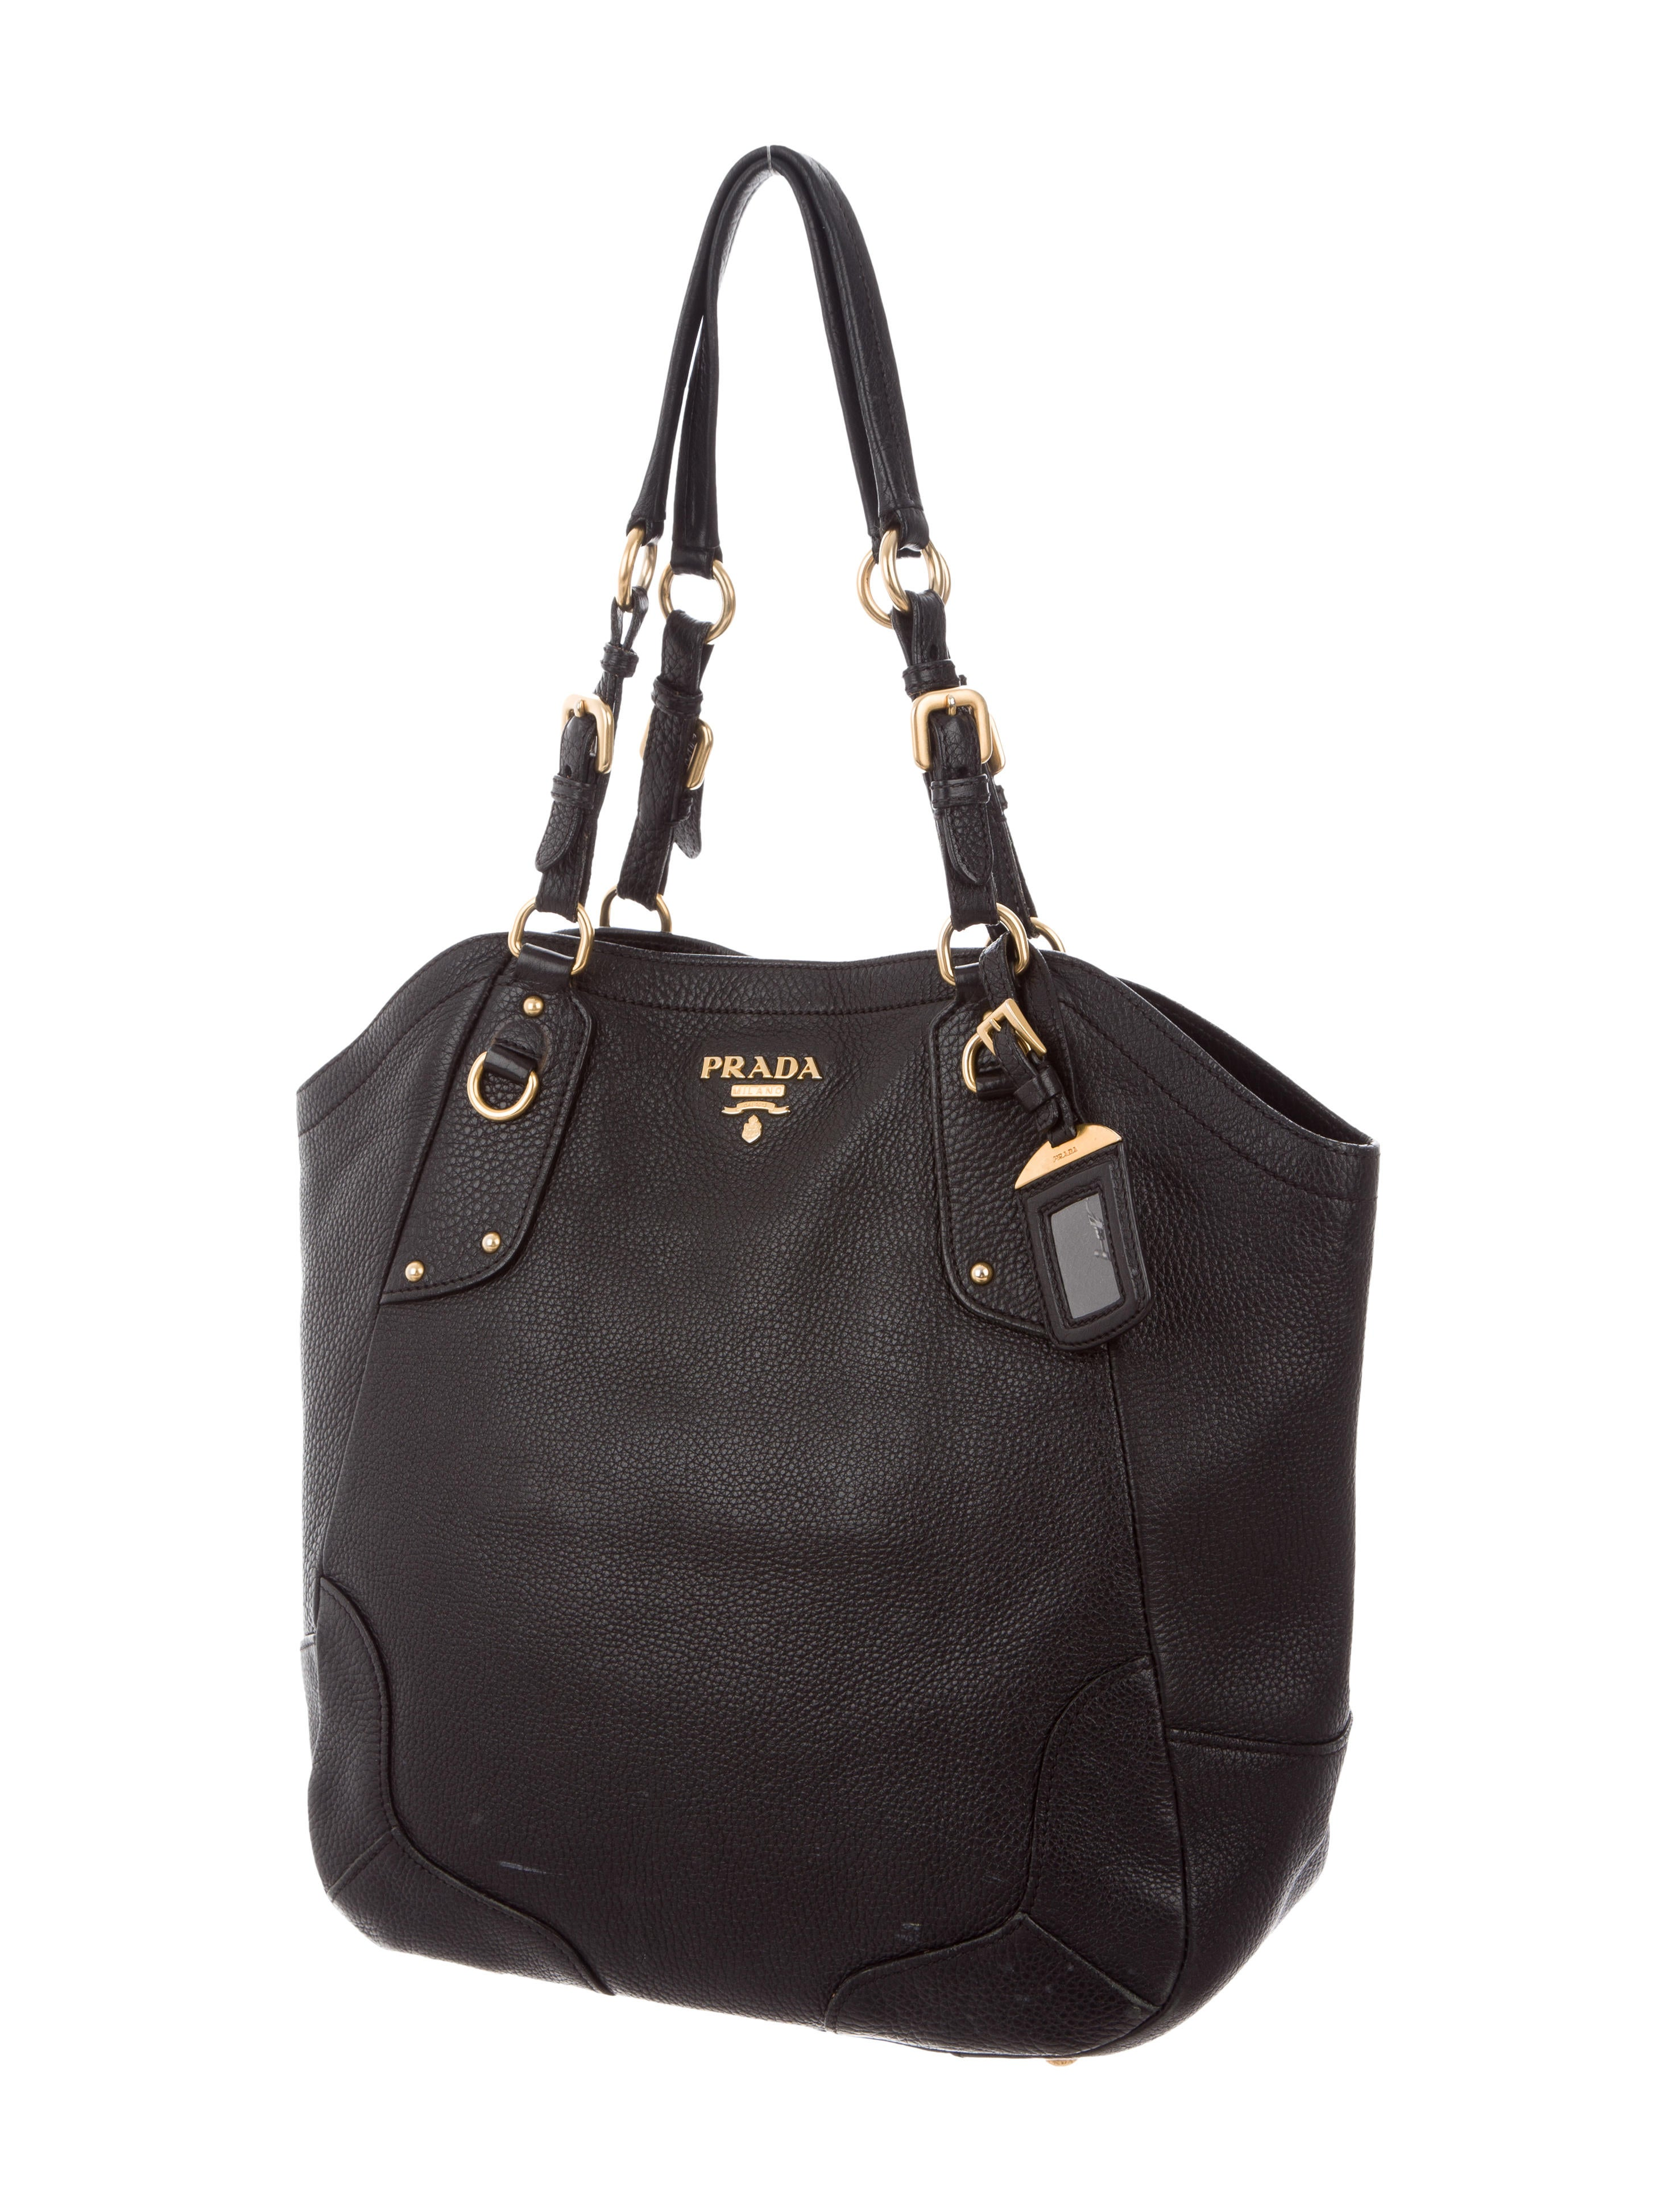 7900e20bd45f Prada Vitello Daino Shoulder Bag - Handbags - PRA185040